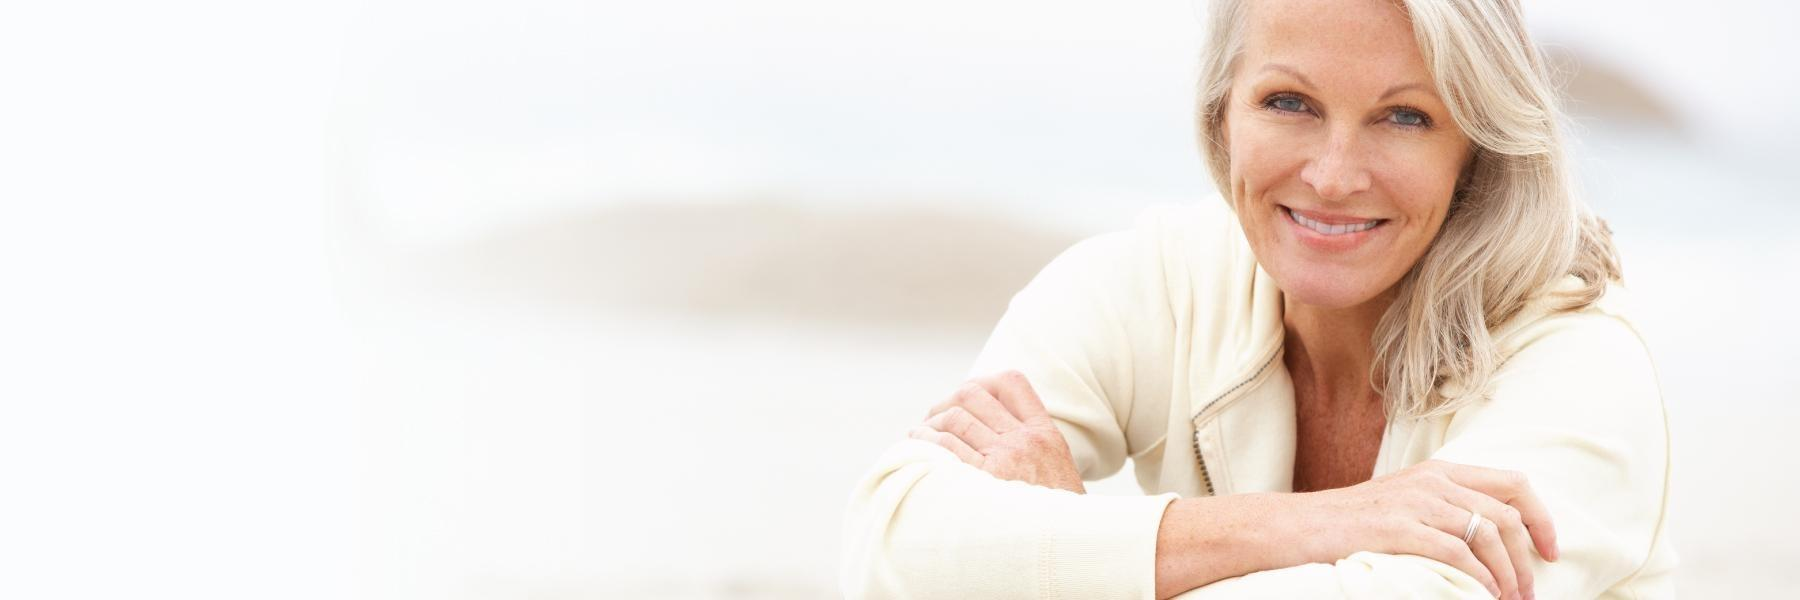 Dental Implants in El Dorado Hills | El Dorado Family Dental